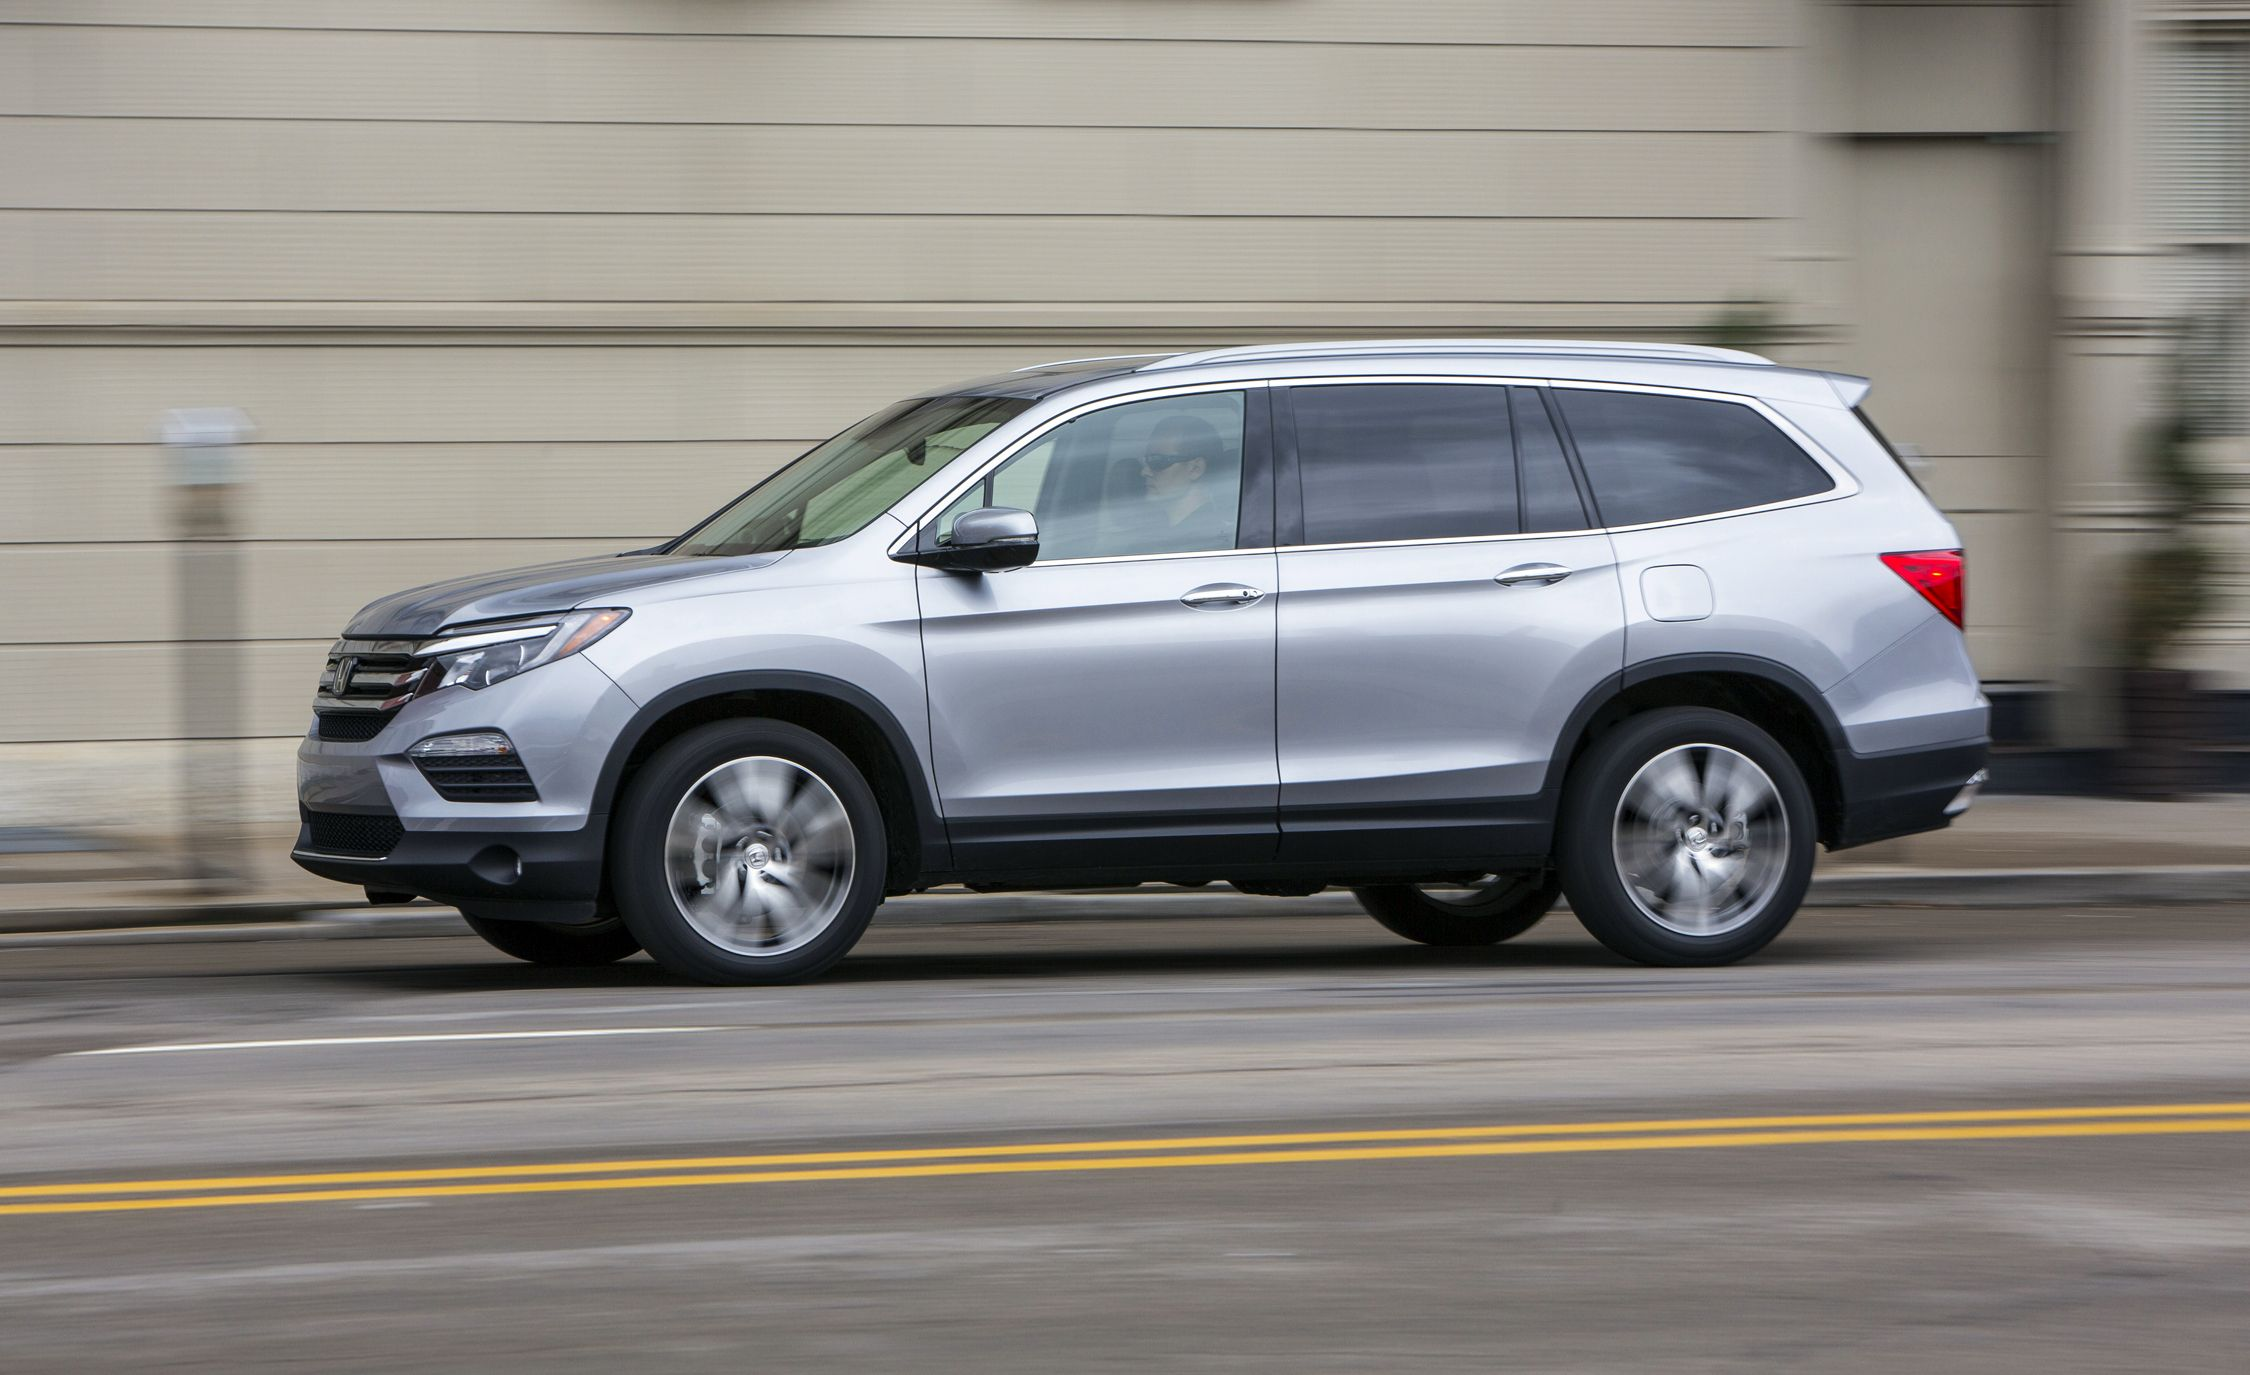 2018 honda pilot in depth model review car and driver for Honda pilot images